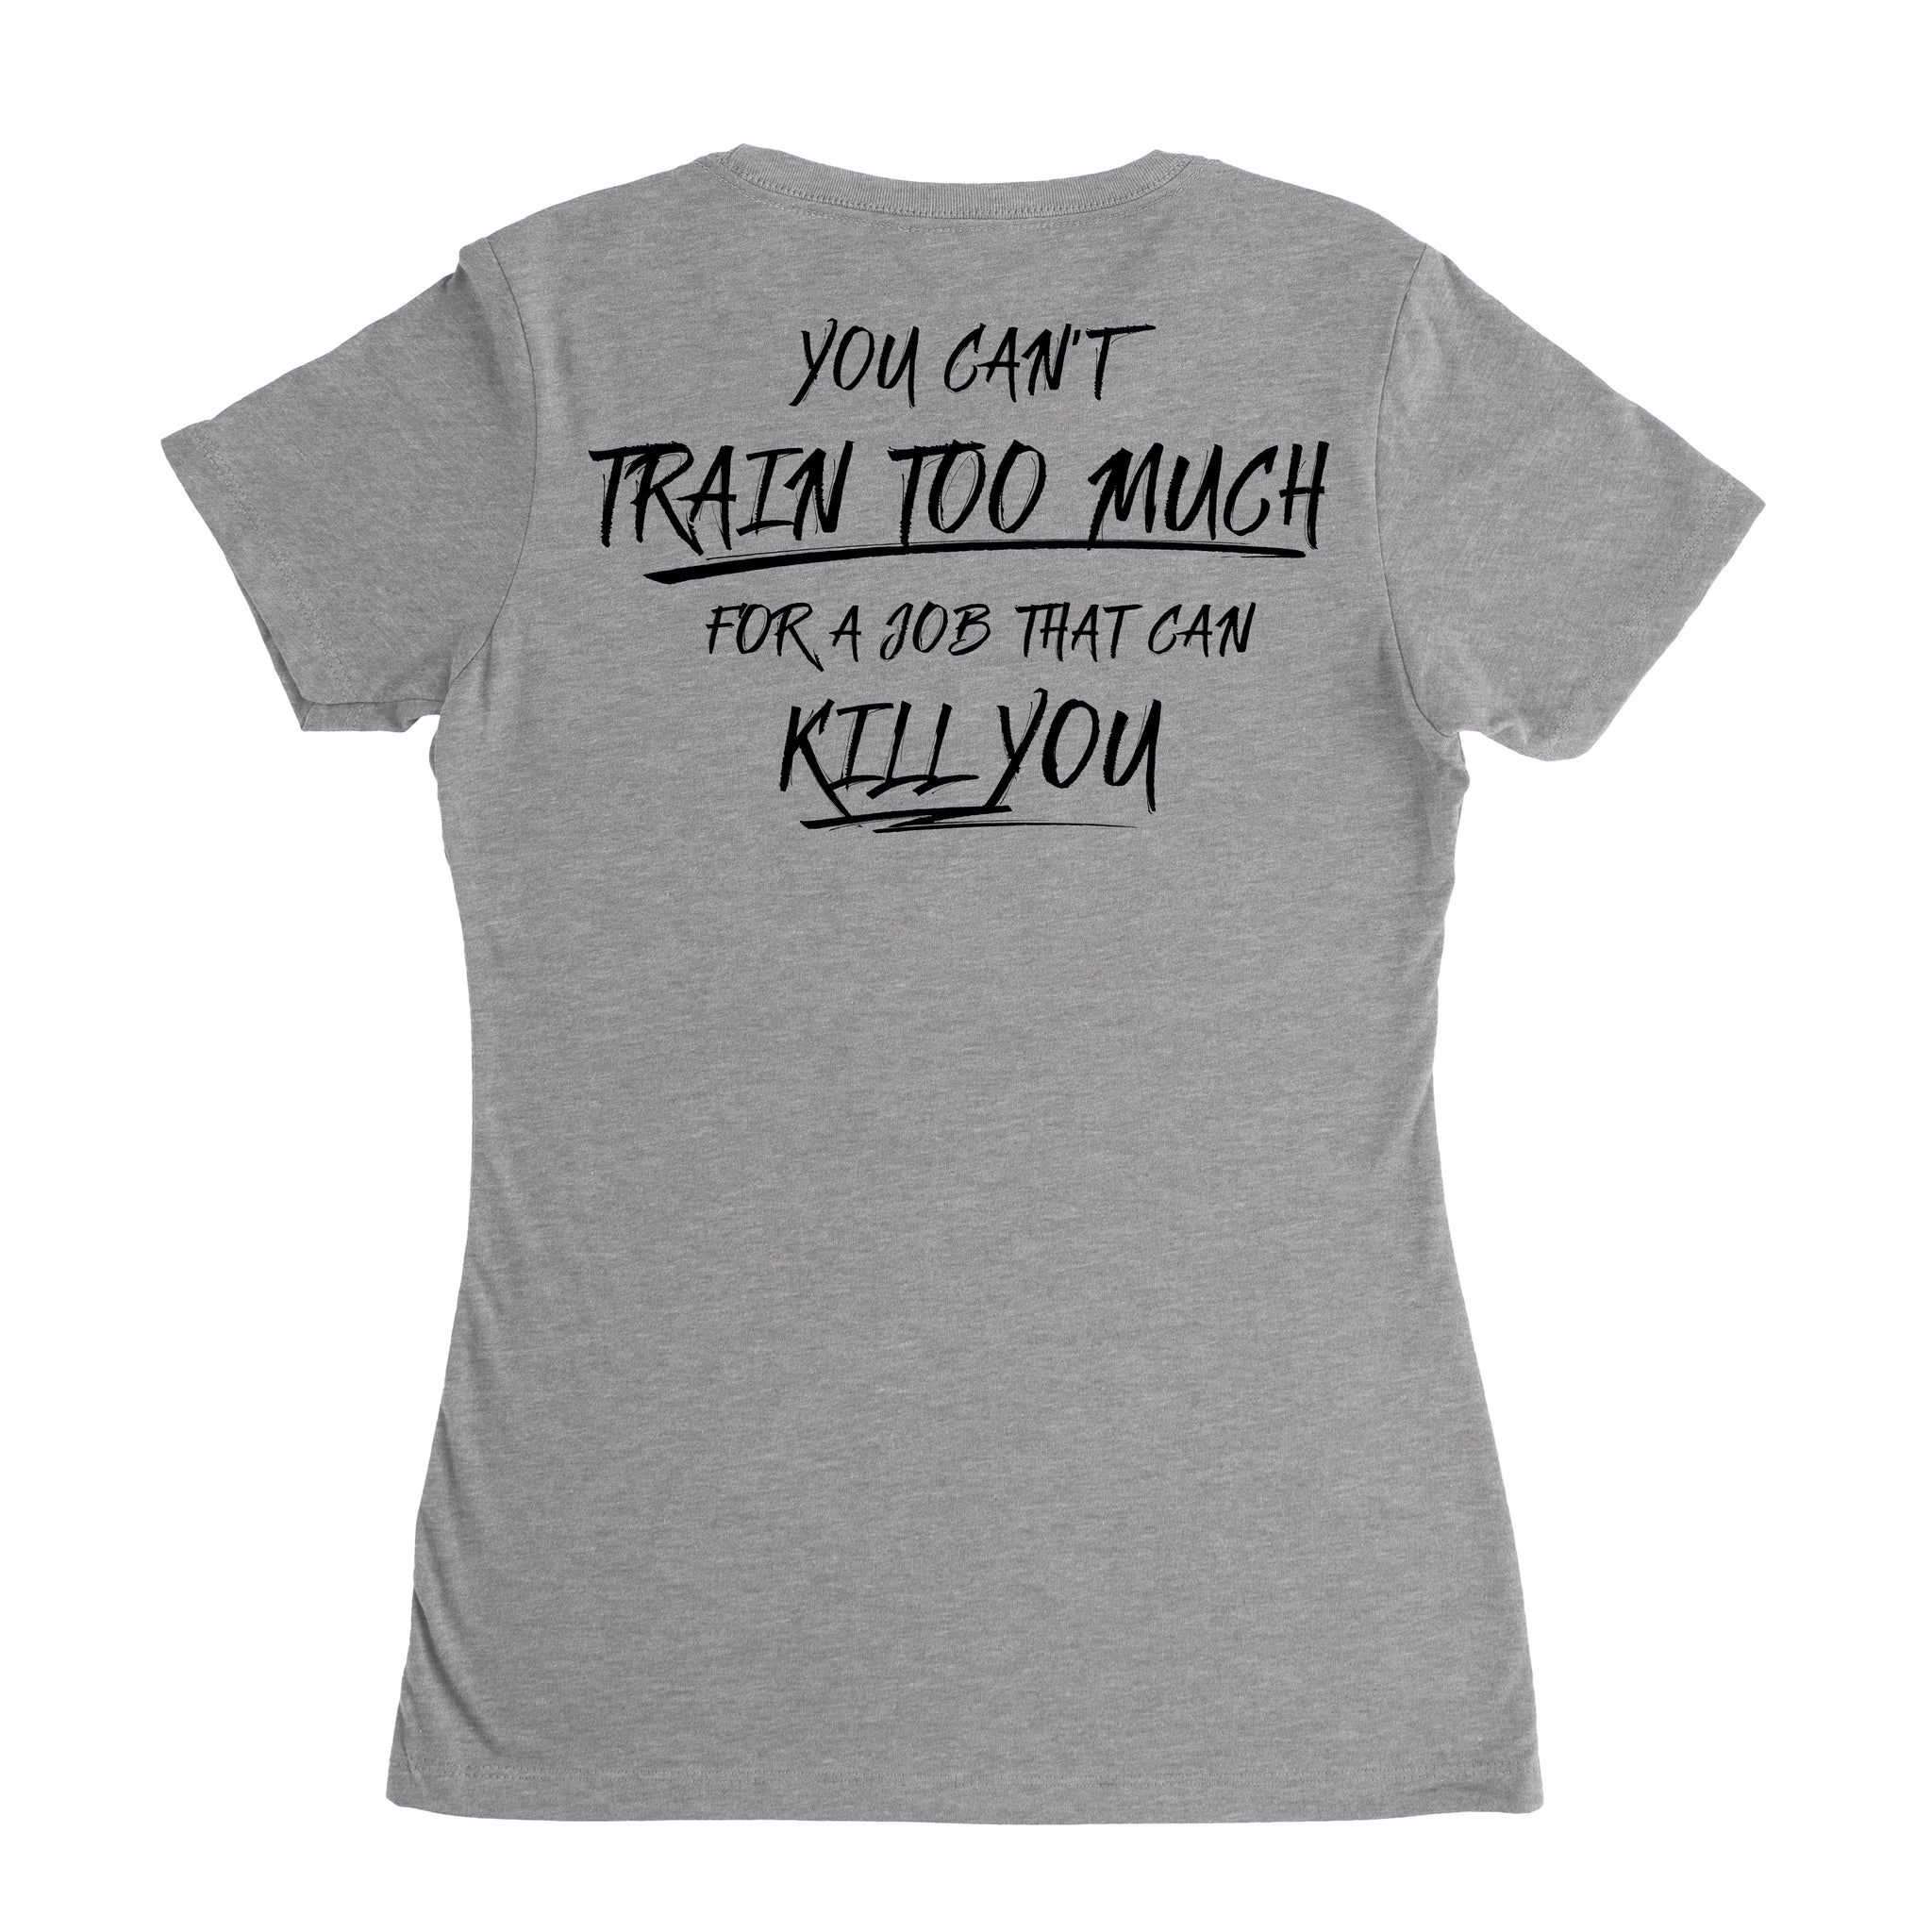 You Can't Train Too Much (V-Neck) - Grey - T-Shirts - Pipe Hitters Union